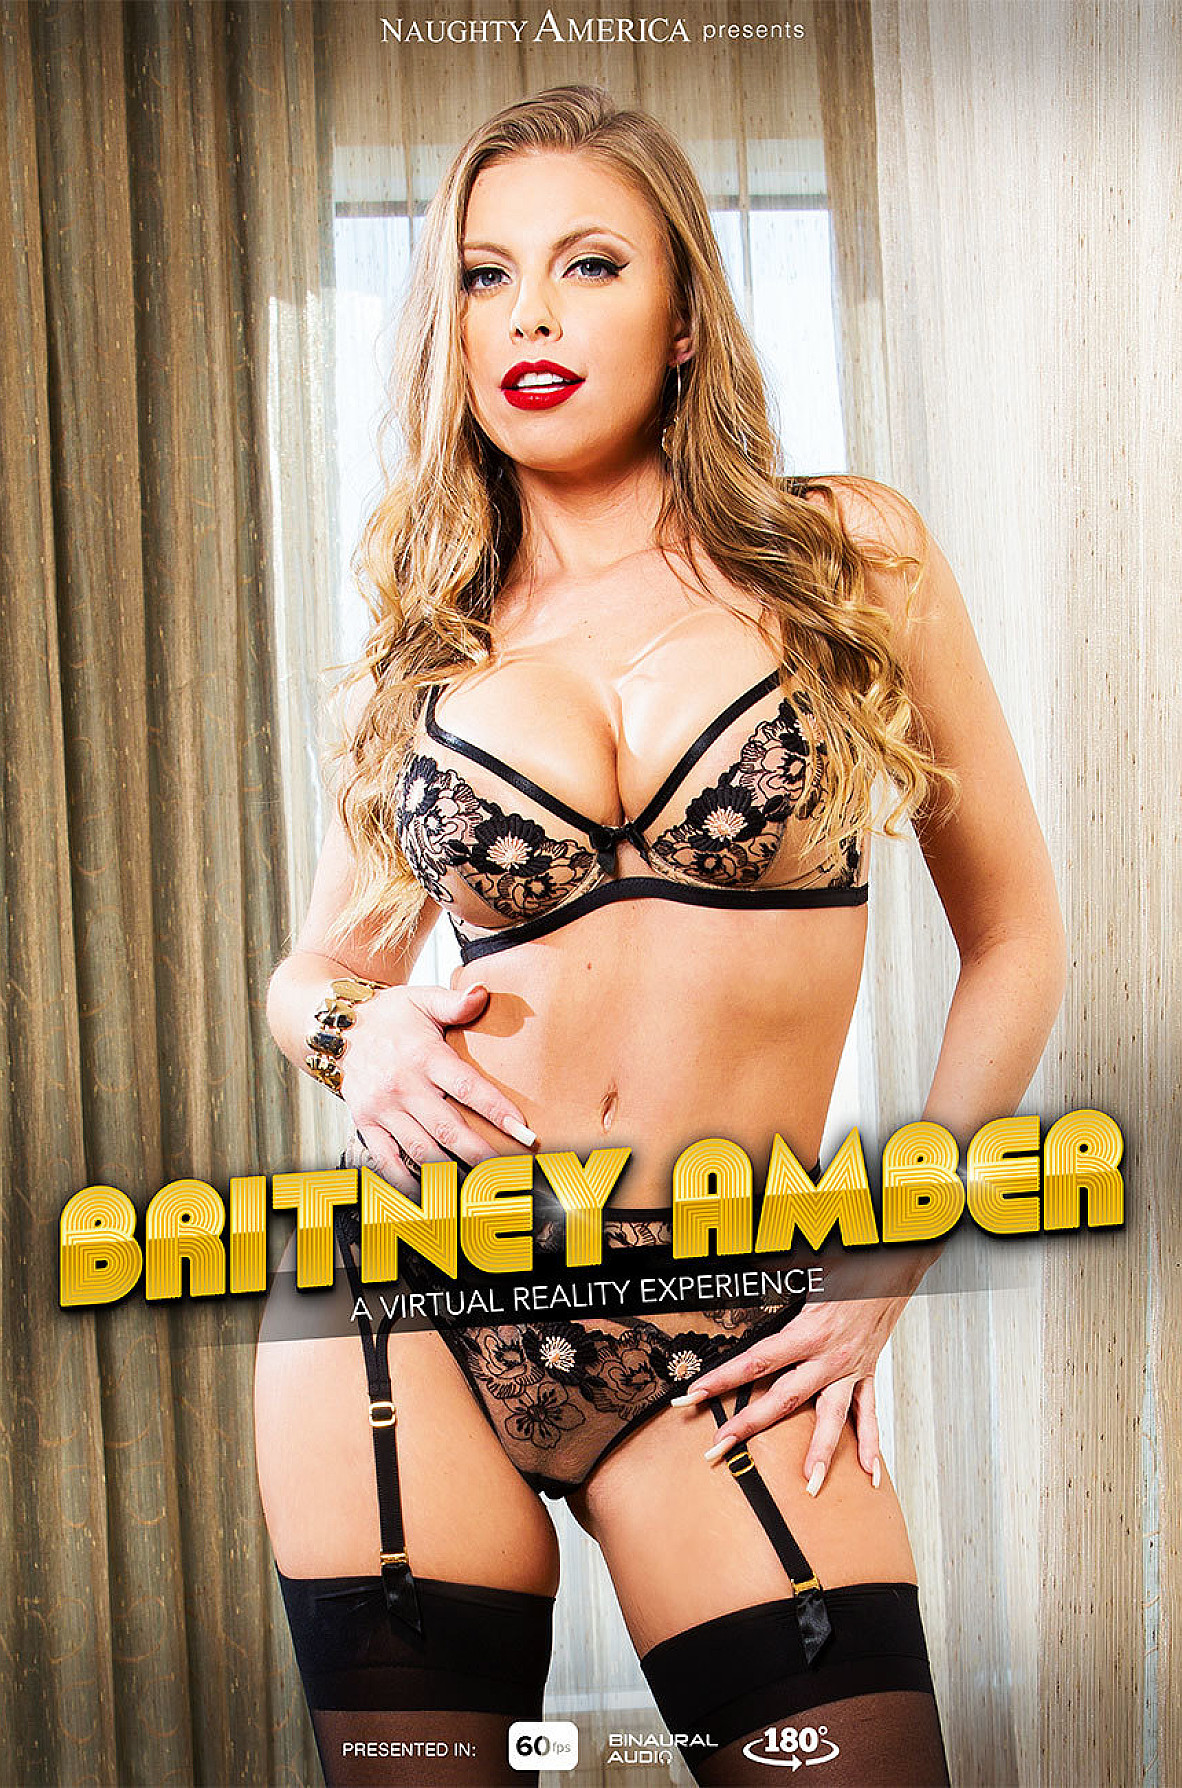 Watch Britney Amber and Chad White VR video in Naughty America